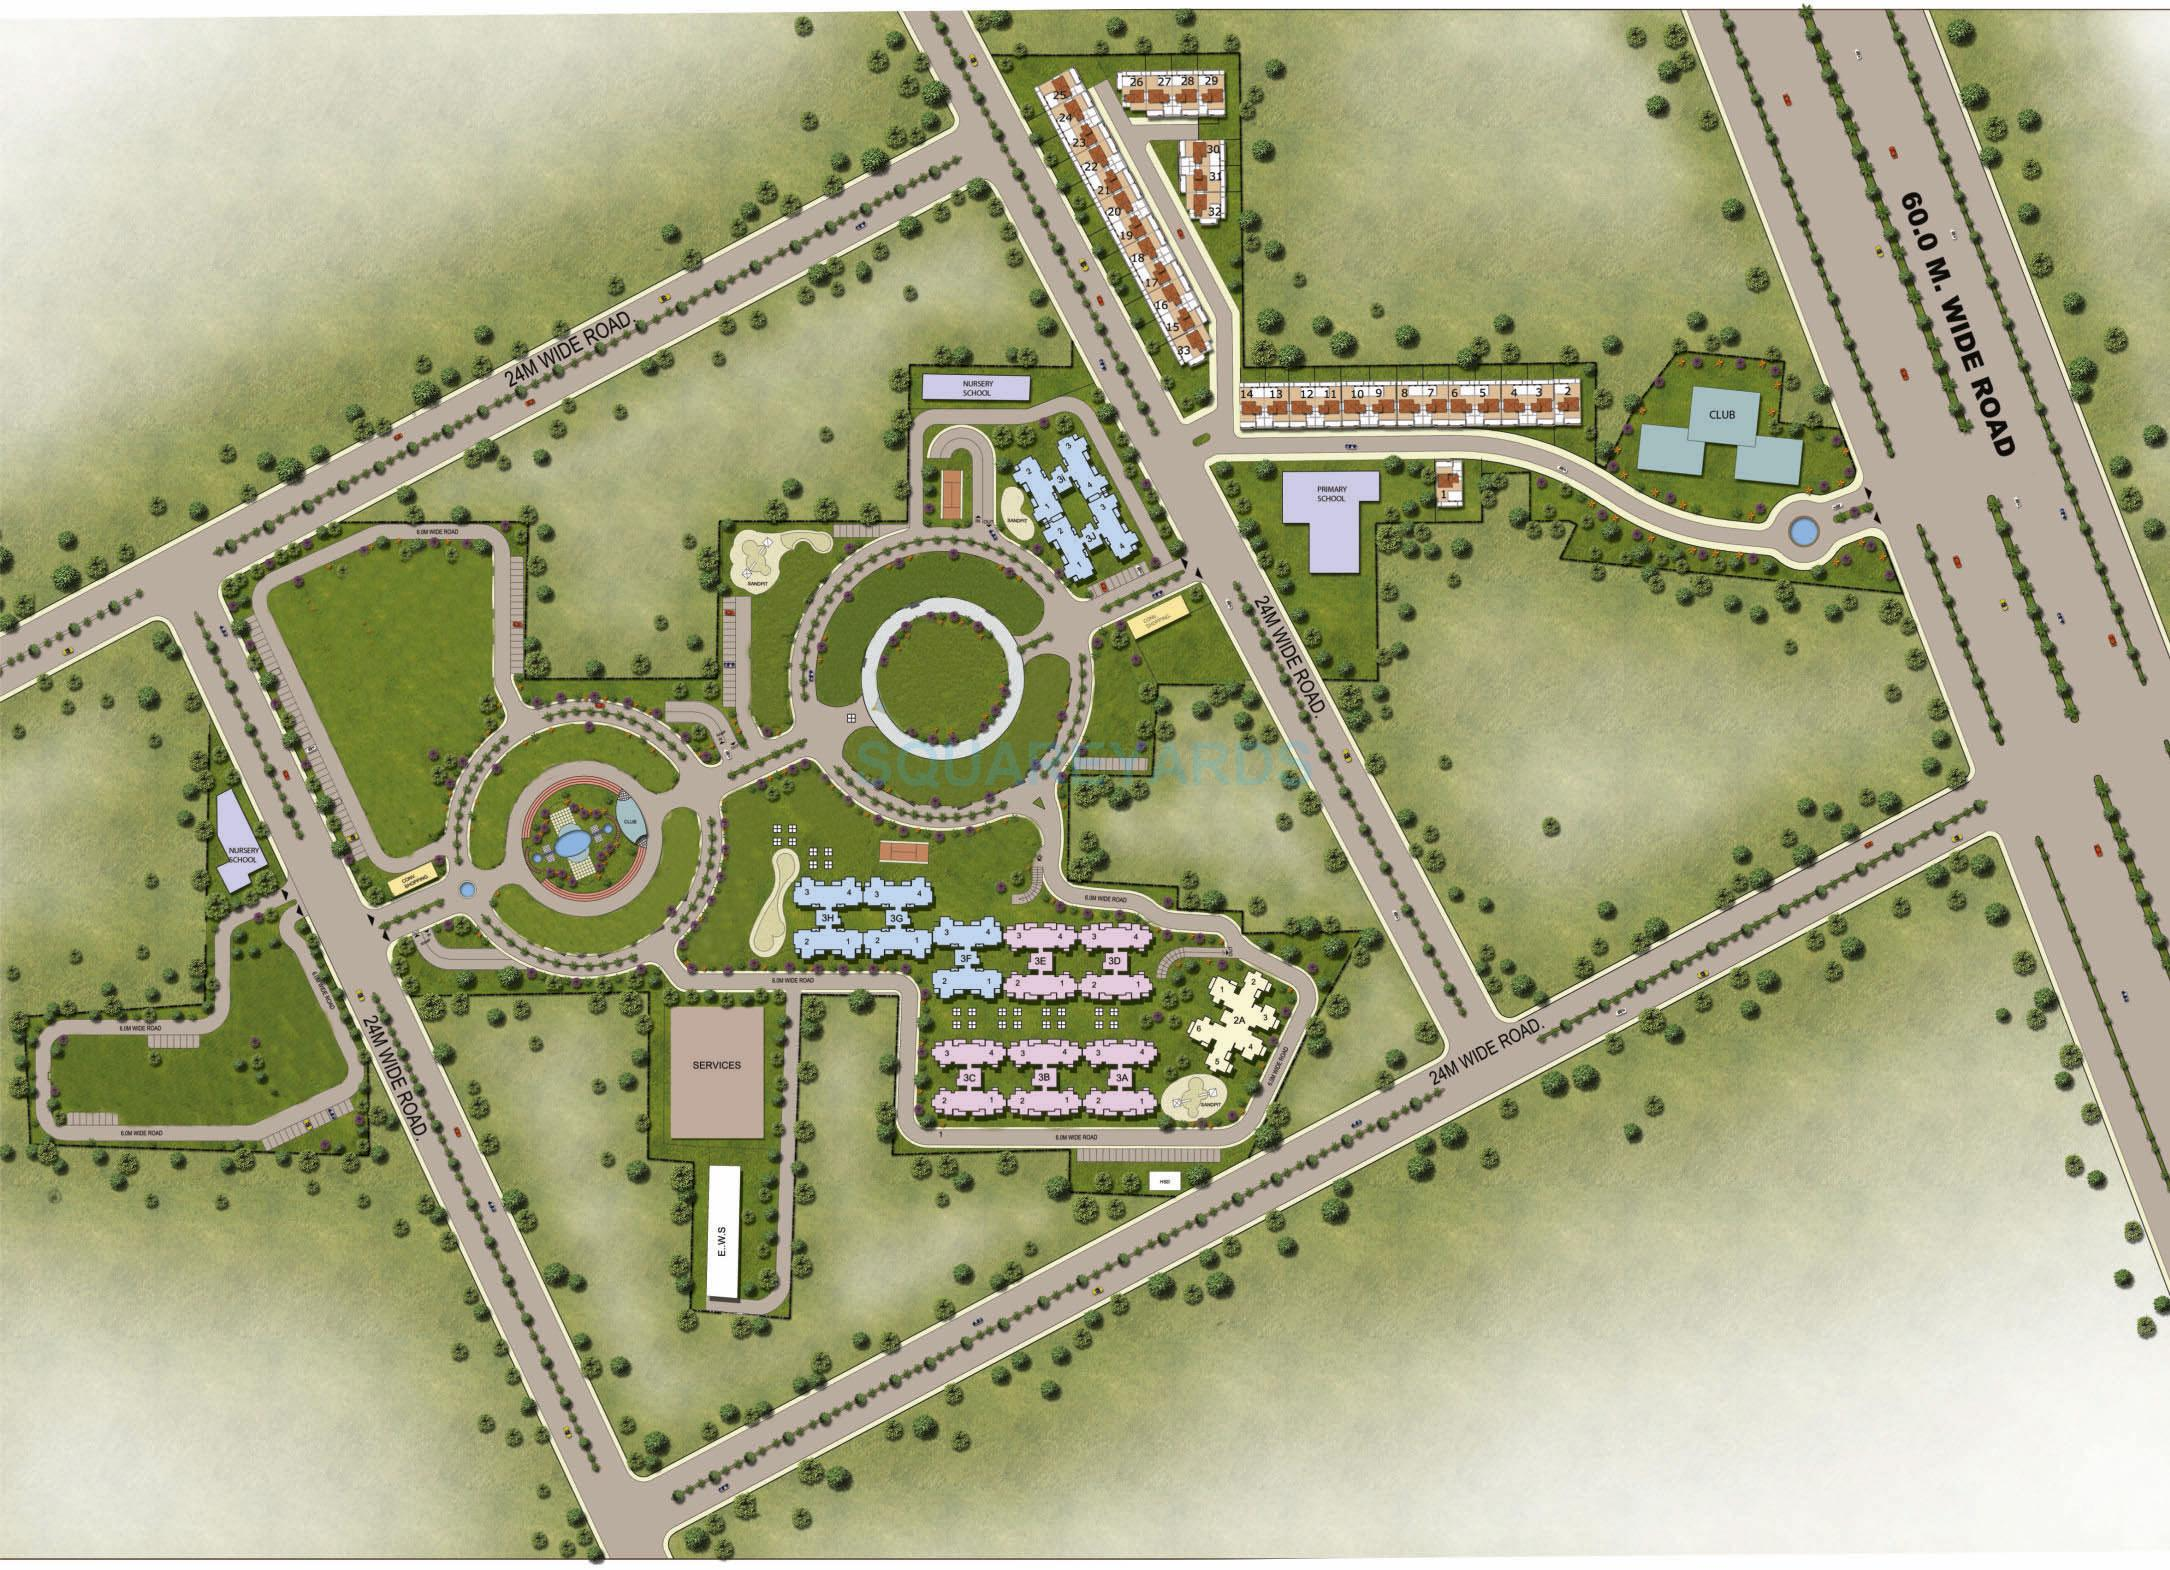 orris aster court master plan image1